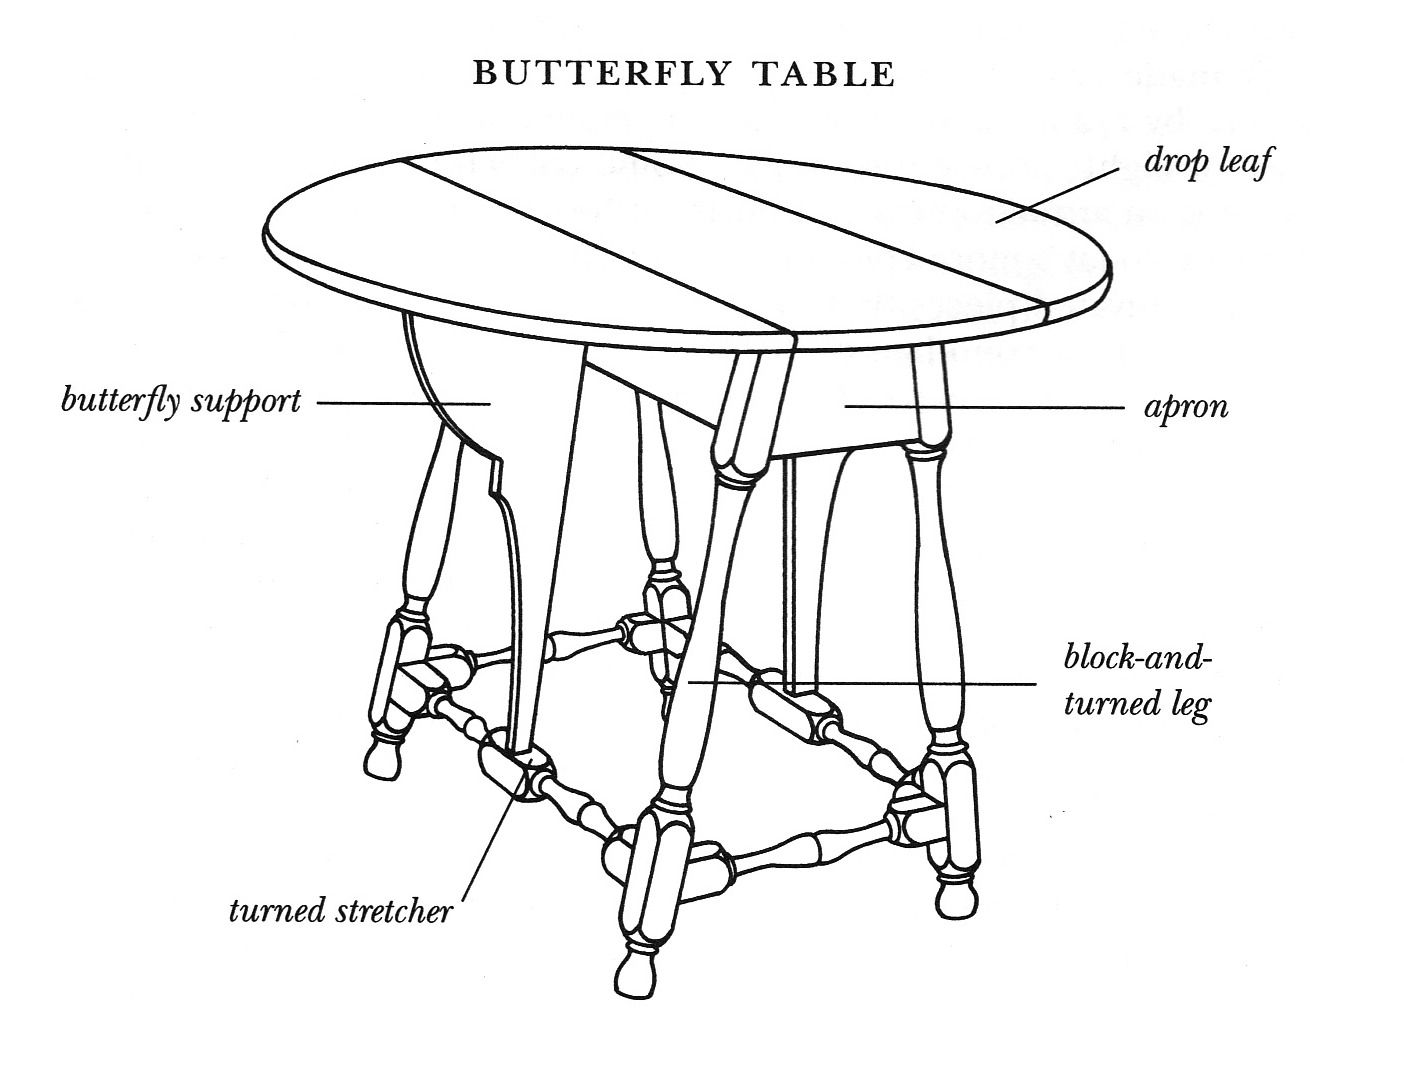 Diagram Of A Butterfly Table In